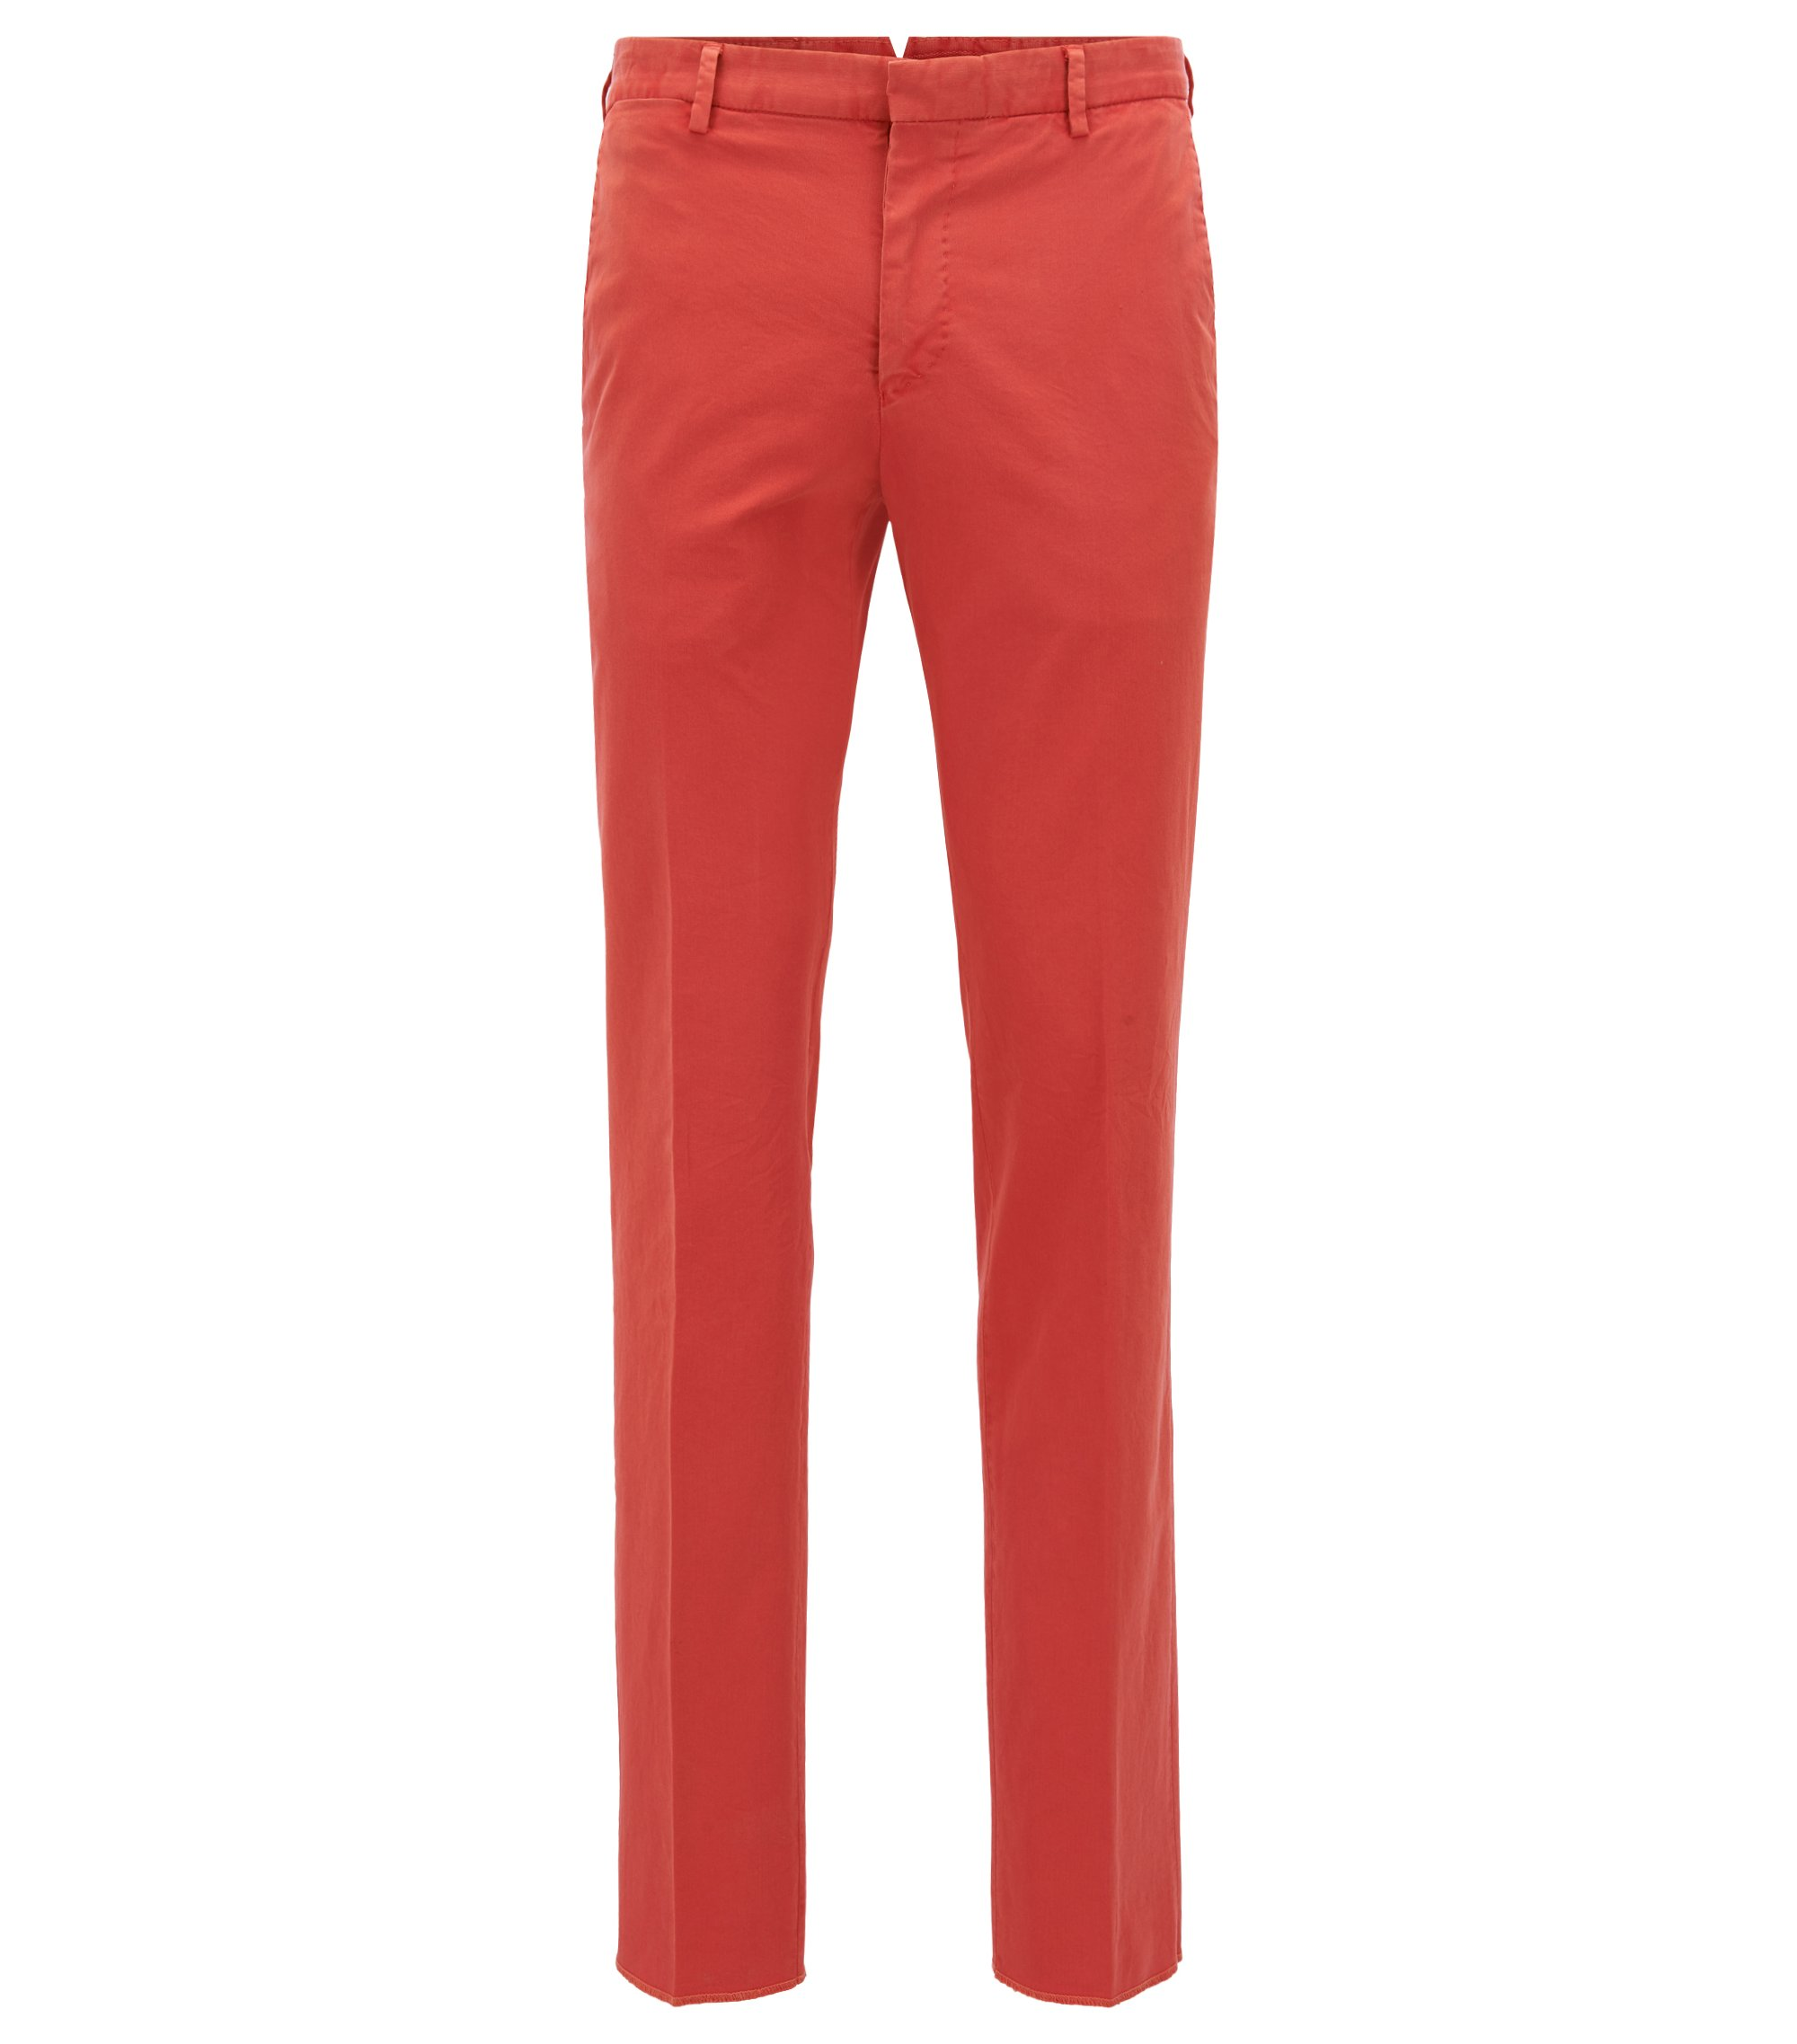 Garment-Dyed Stretch Cotton Suiting Pant, Slim Fit | Barlow D, Dark Orange